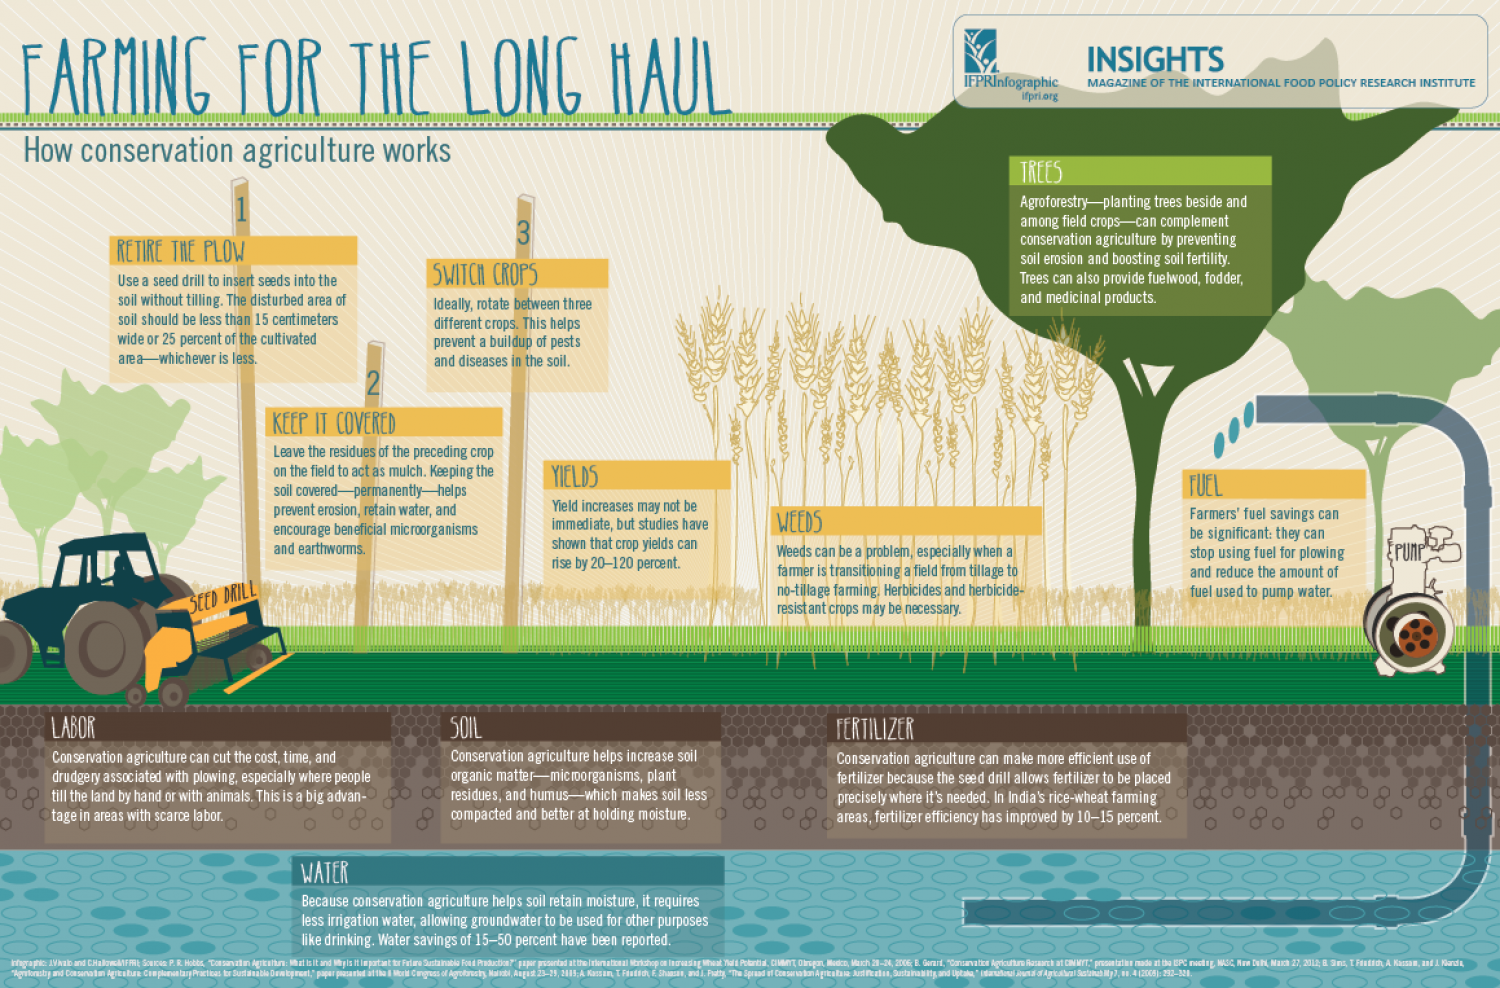 Farming for the Long Haul Infographic